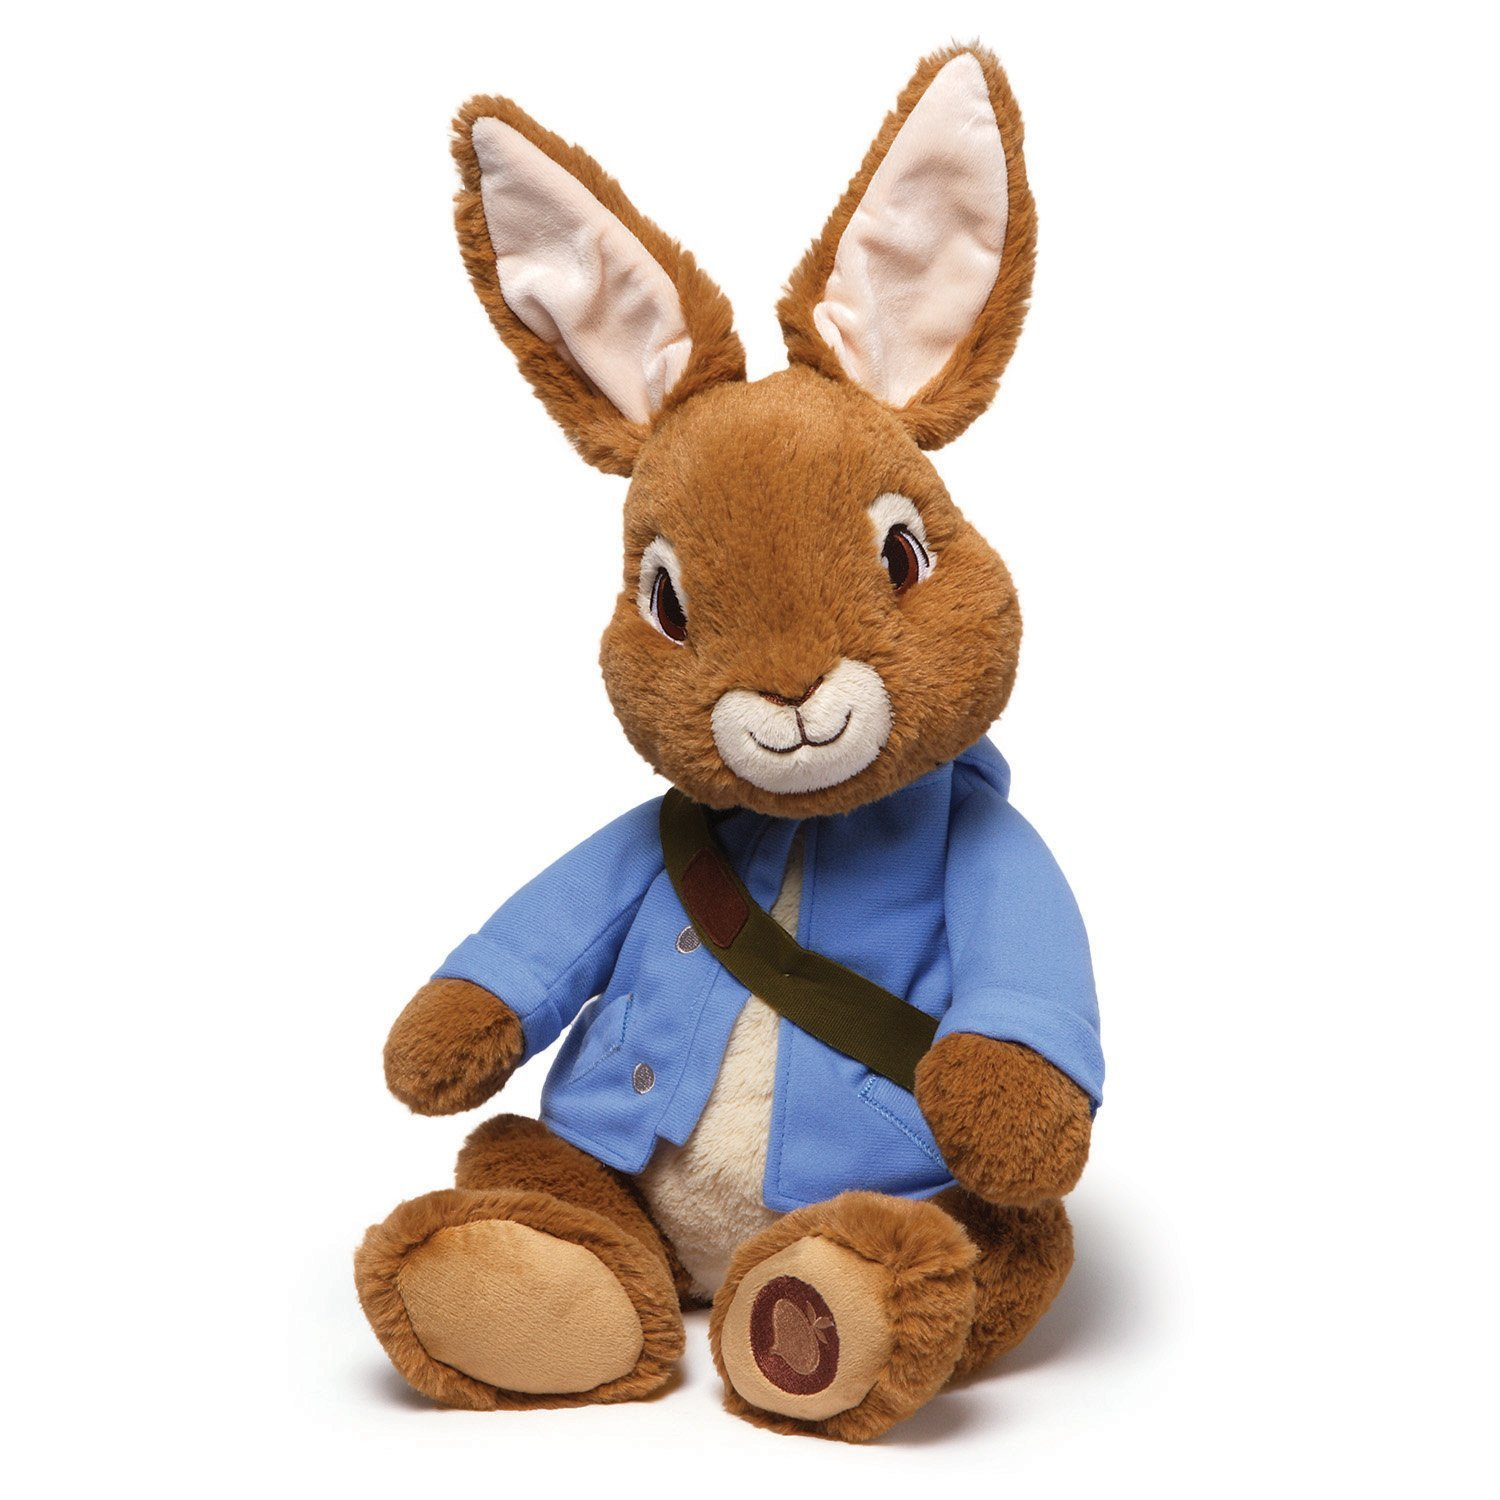 Amazon.com: Gund Peter Rabbit Stuffed Animal, 11.5 inches: Toy: Toys & Games